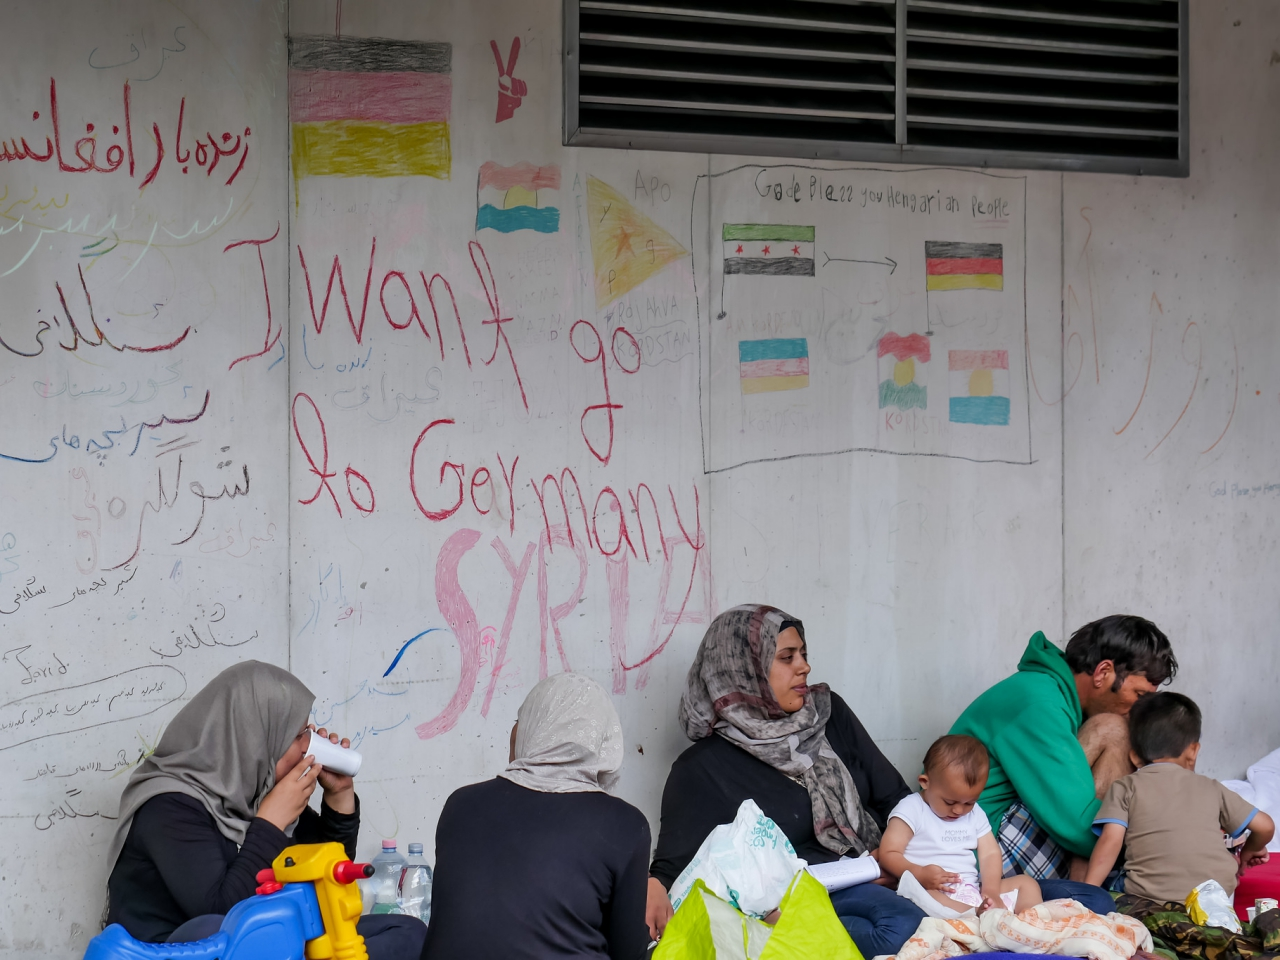 A refugee finds hope in Hungary